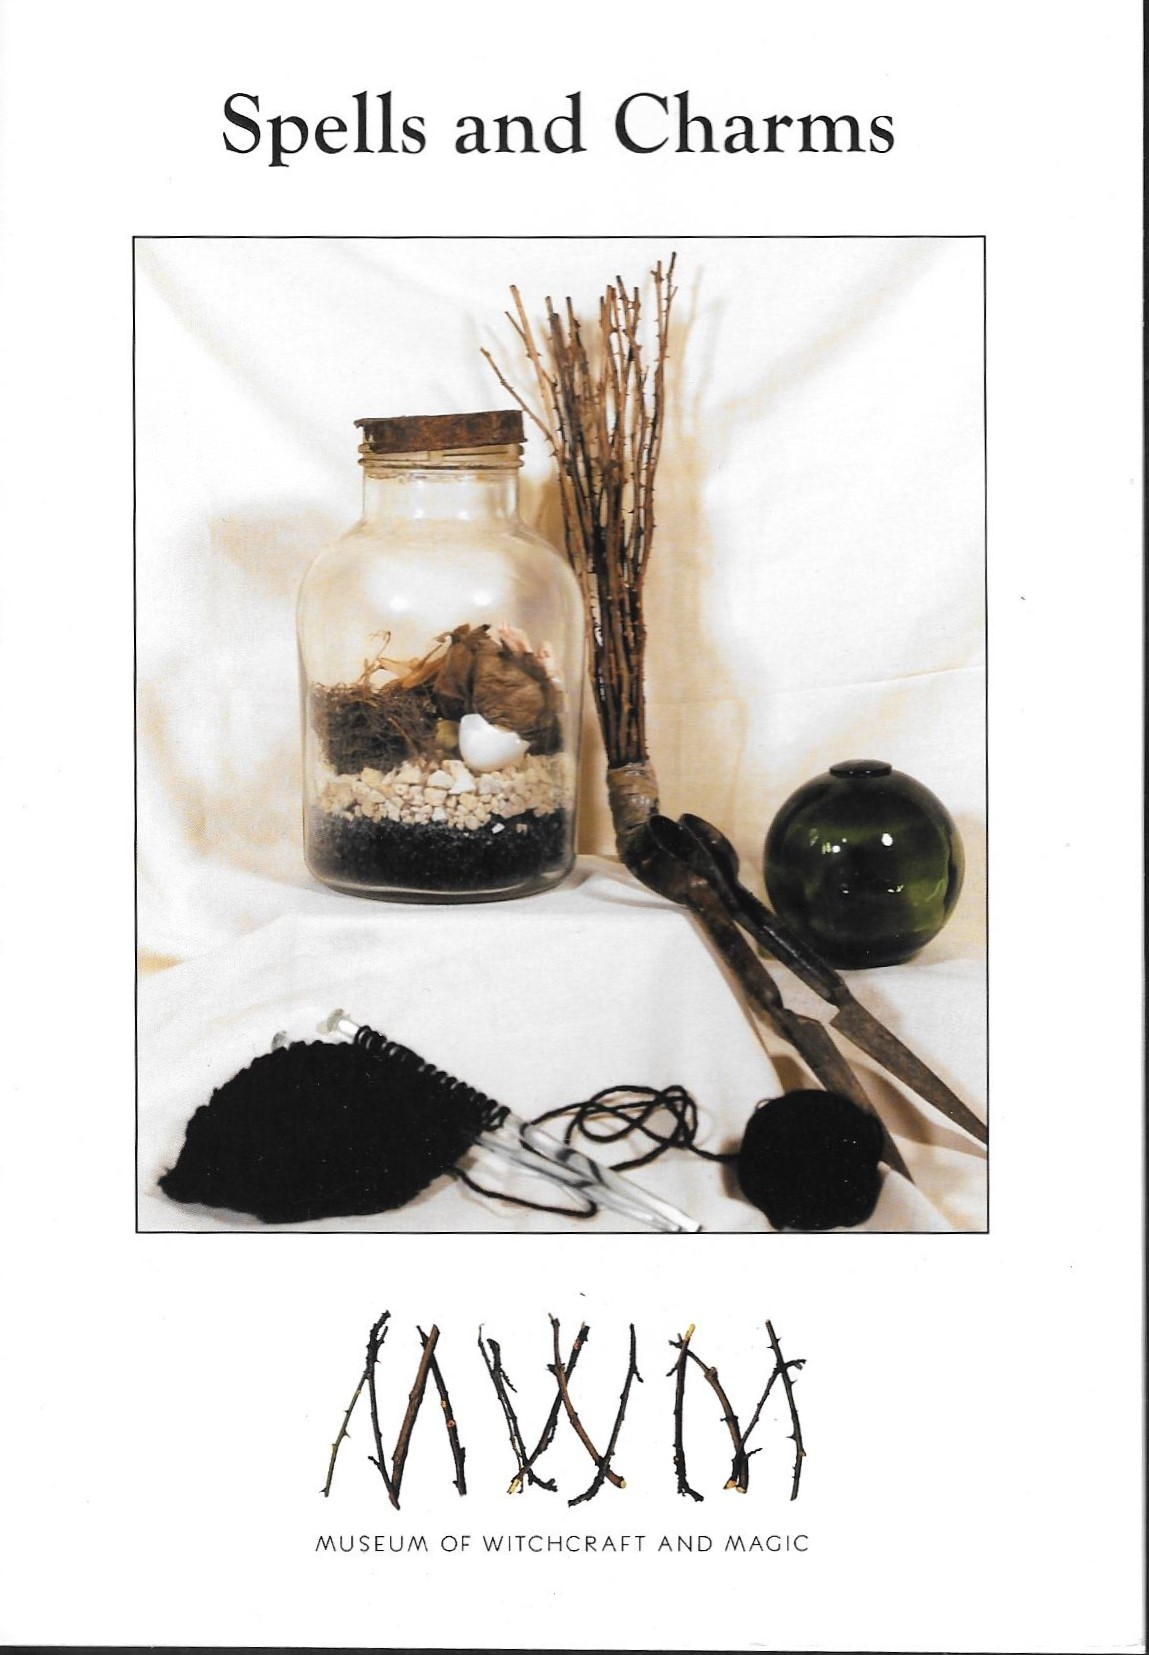 Spells and Charms booklet now available